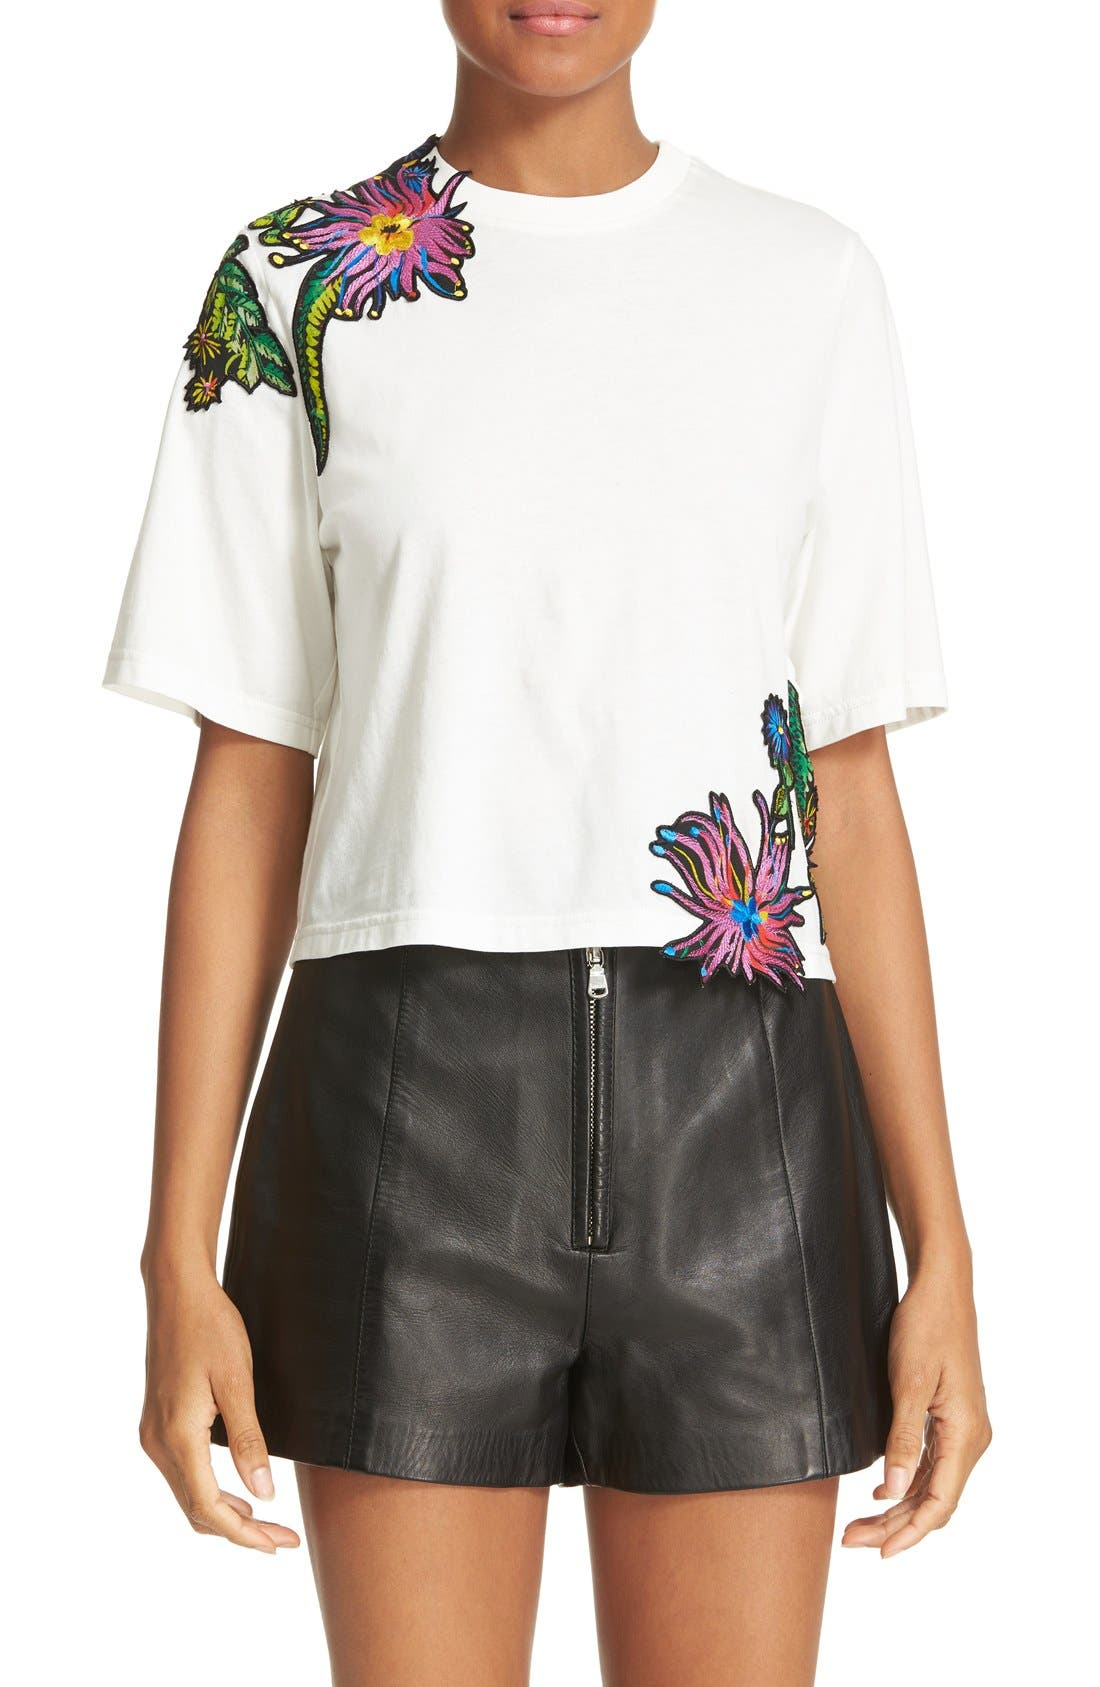 Main Image - 3.1 Phillip Lim Embroidered Floral Patch Tee